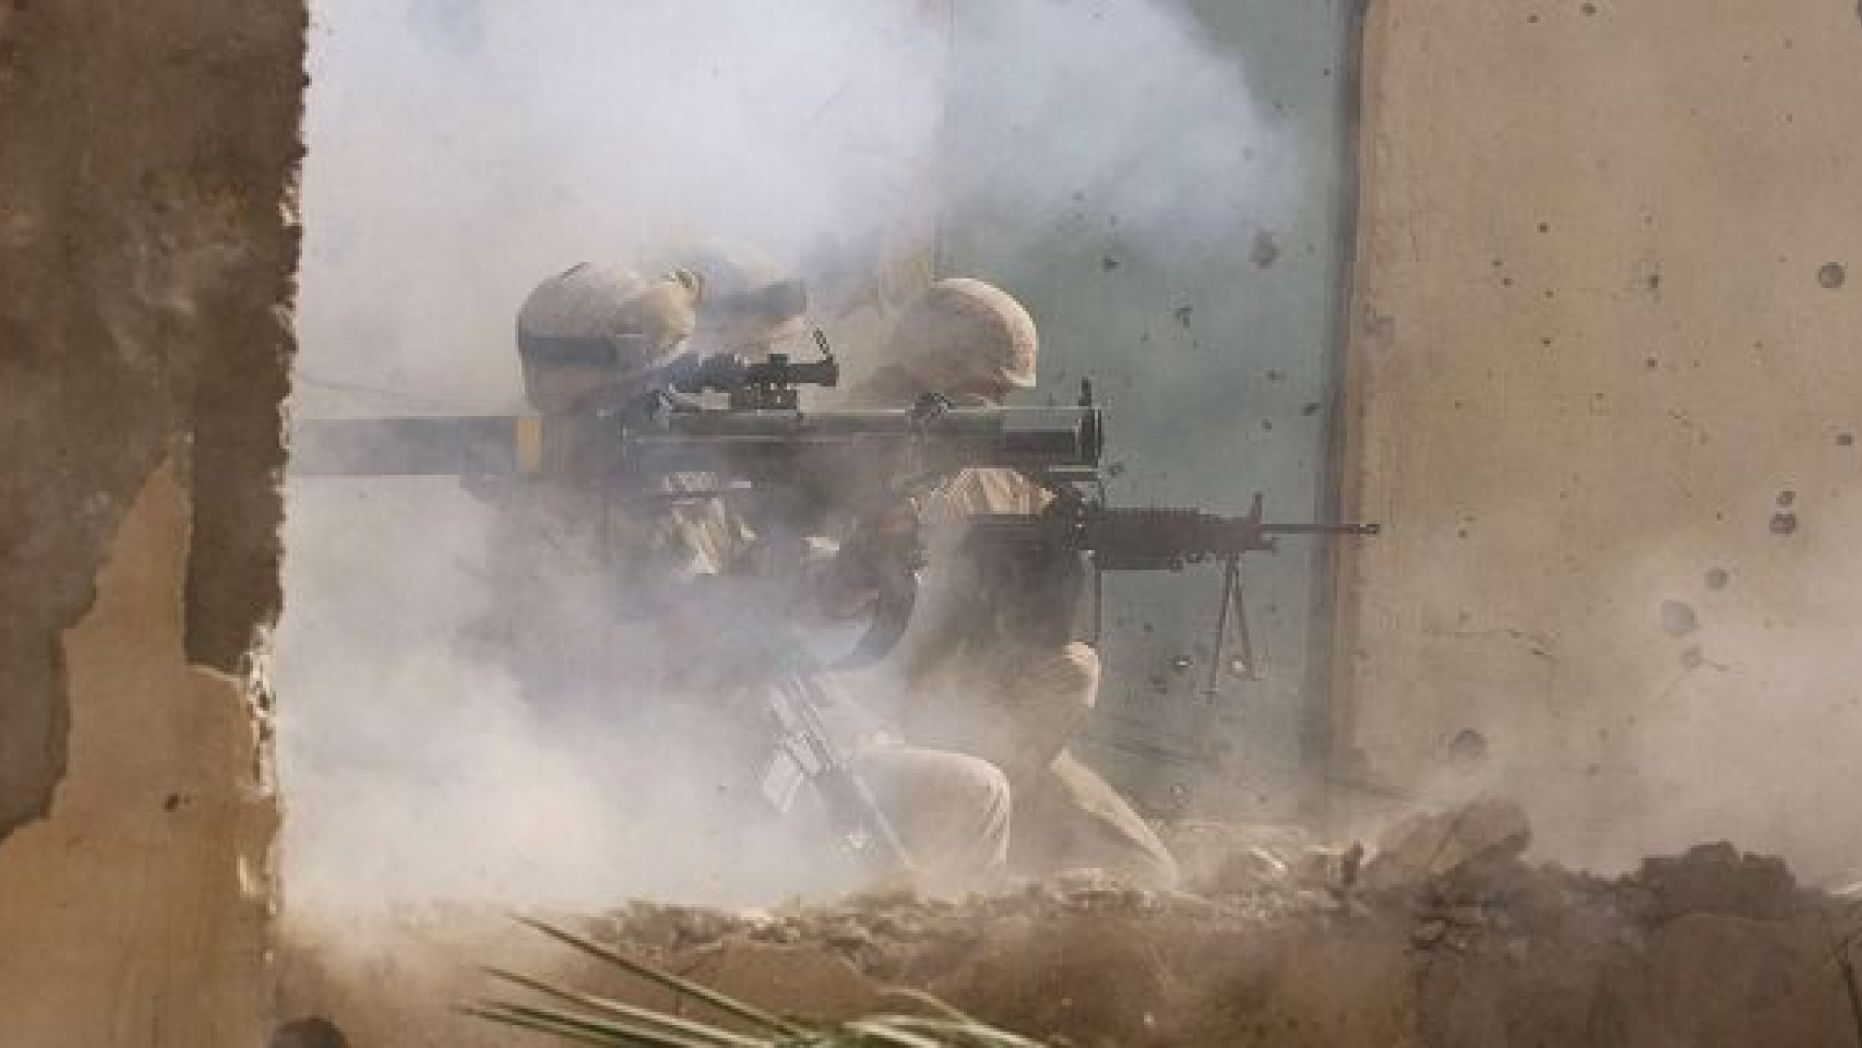 FILE -- NOVEMBER 23, 2004: U.S. Marines of the Light Armored Reconnaissance (LAR) company of 1st Battalion 3rd Marines, fire a rocket to clear houses at the site where four insurgents staged a bloody counter-attack, killing one American and wounding many others in Fallujah, Iraq. (Photo by Scott Peterson/Getty Images)